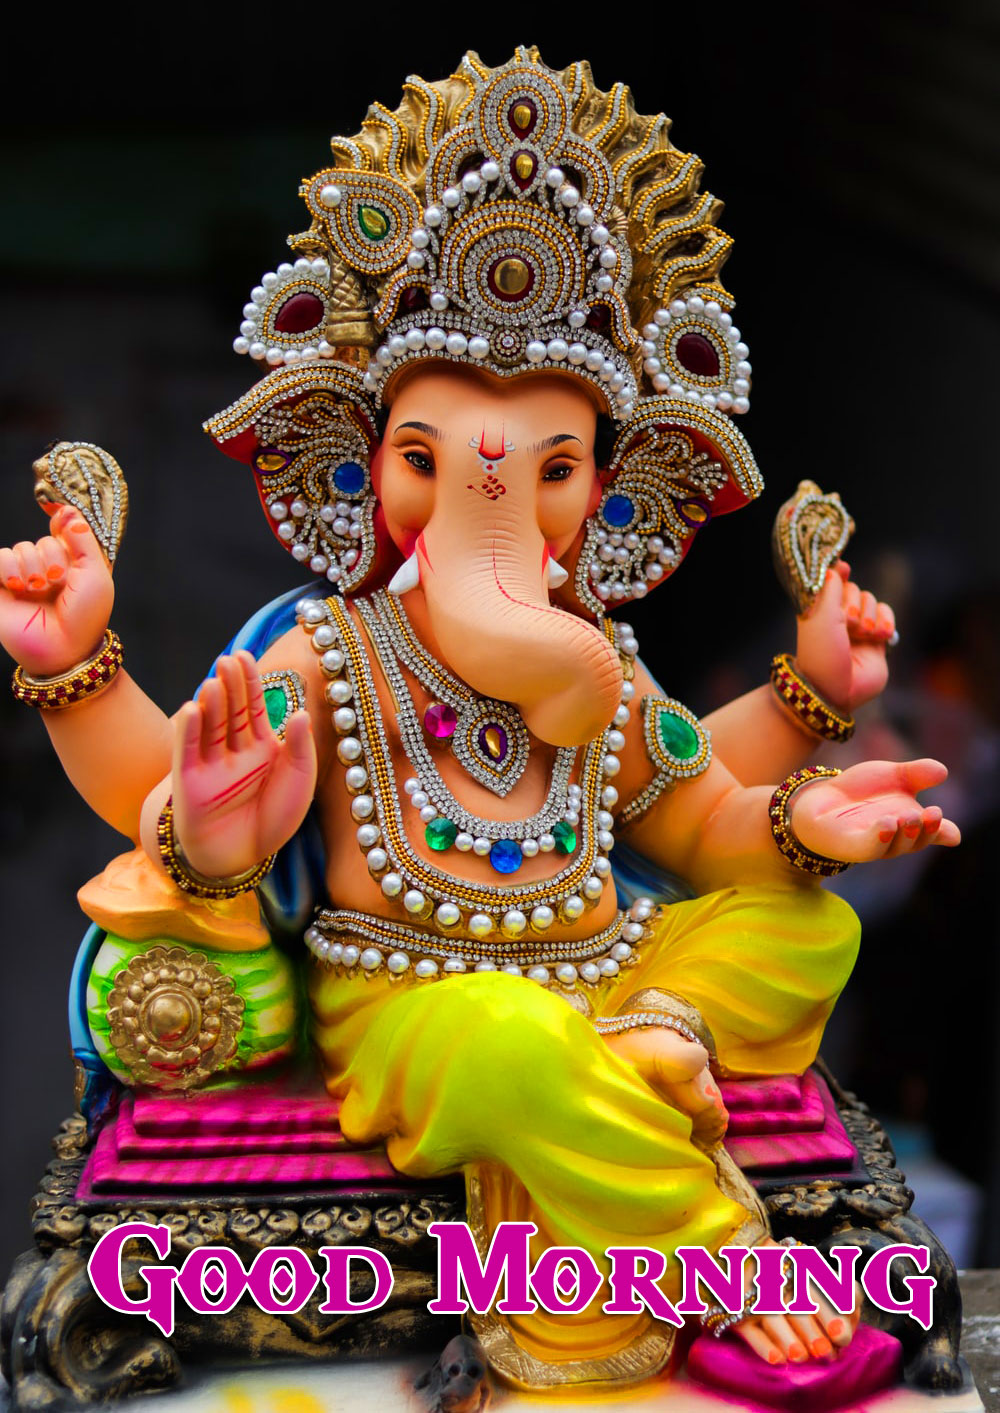 Lord Ganesha Good Morning Pics Free Download